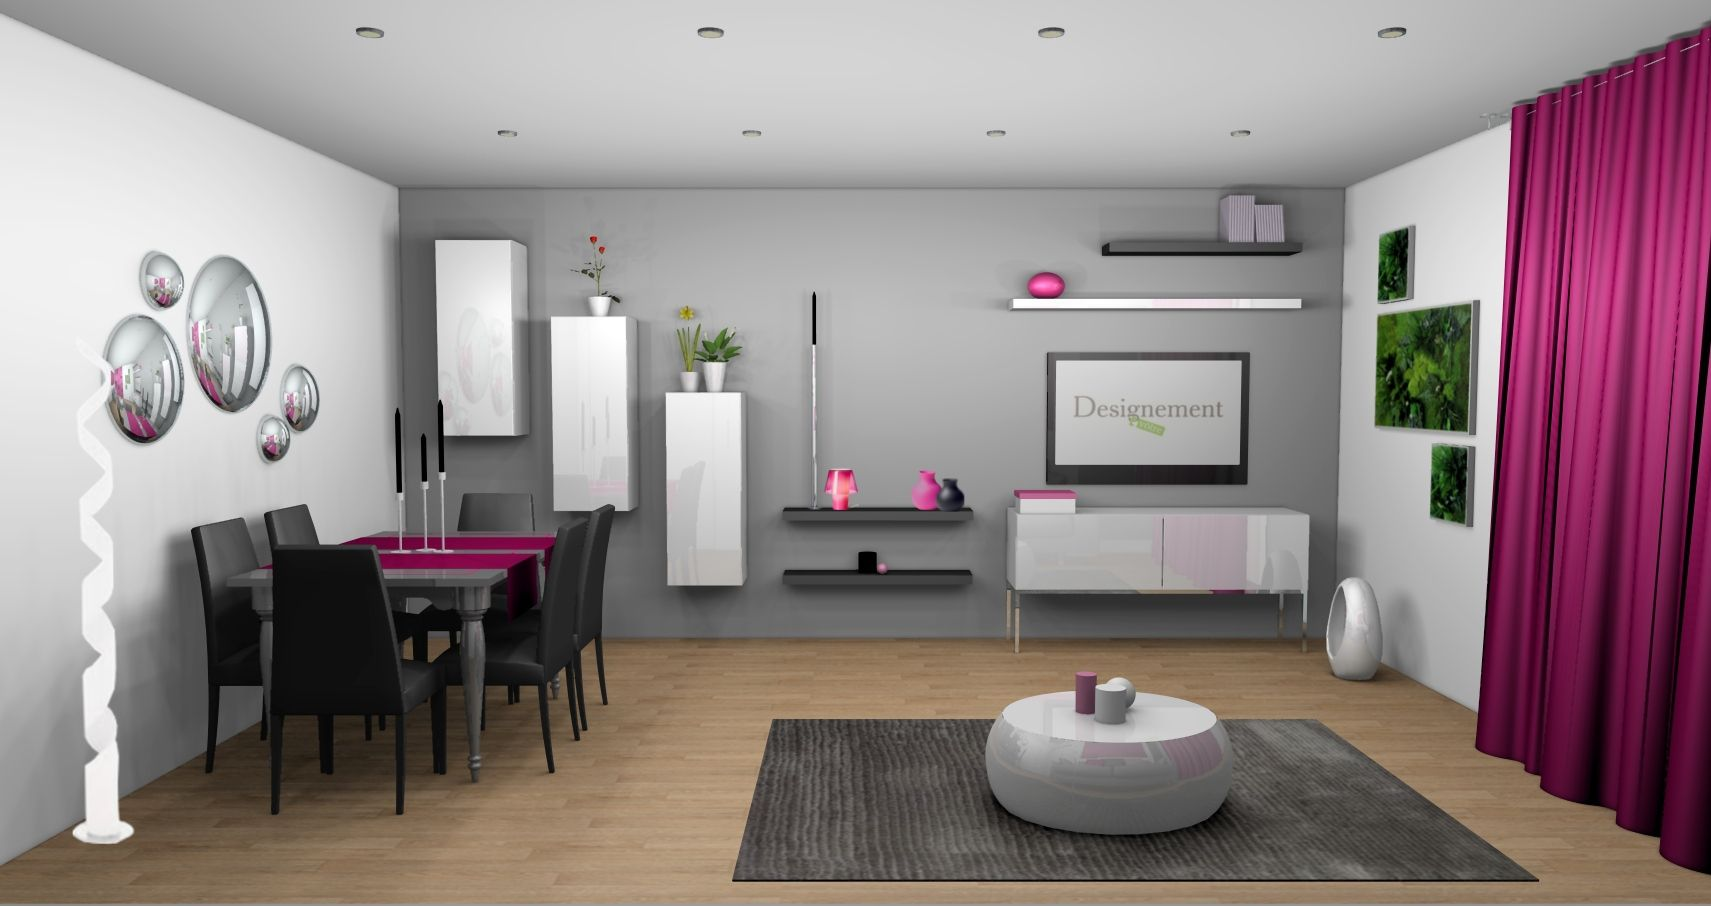 D co salon m r gris et blanc touche de couleur fushia for Idee deco salon sejour